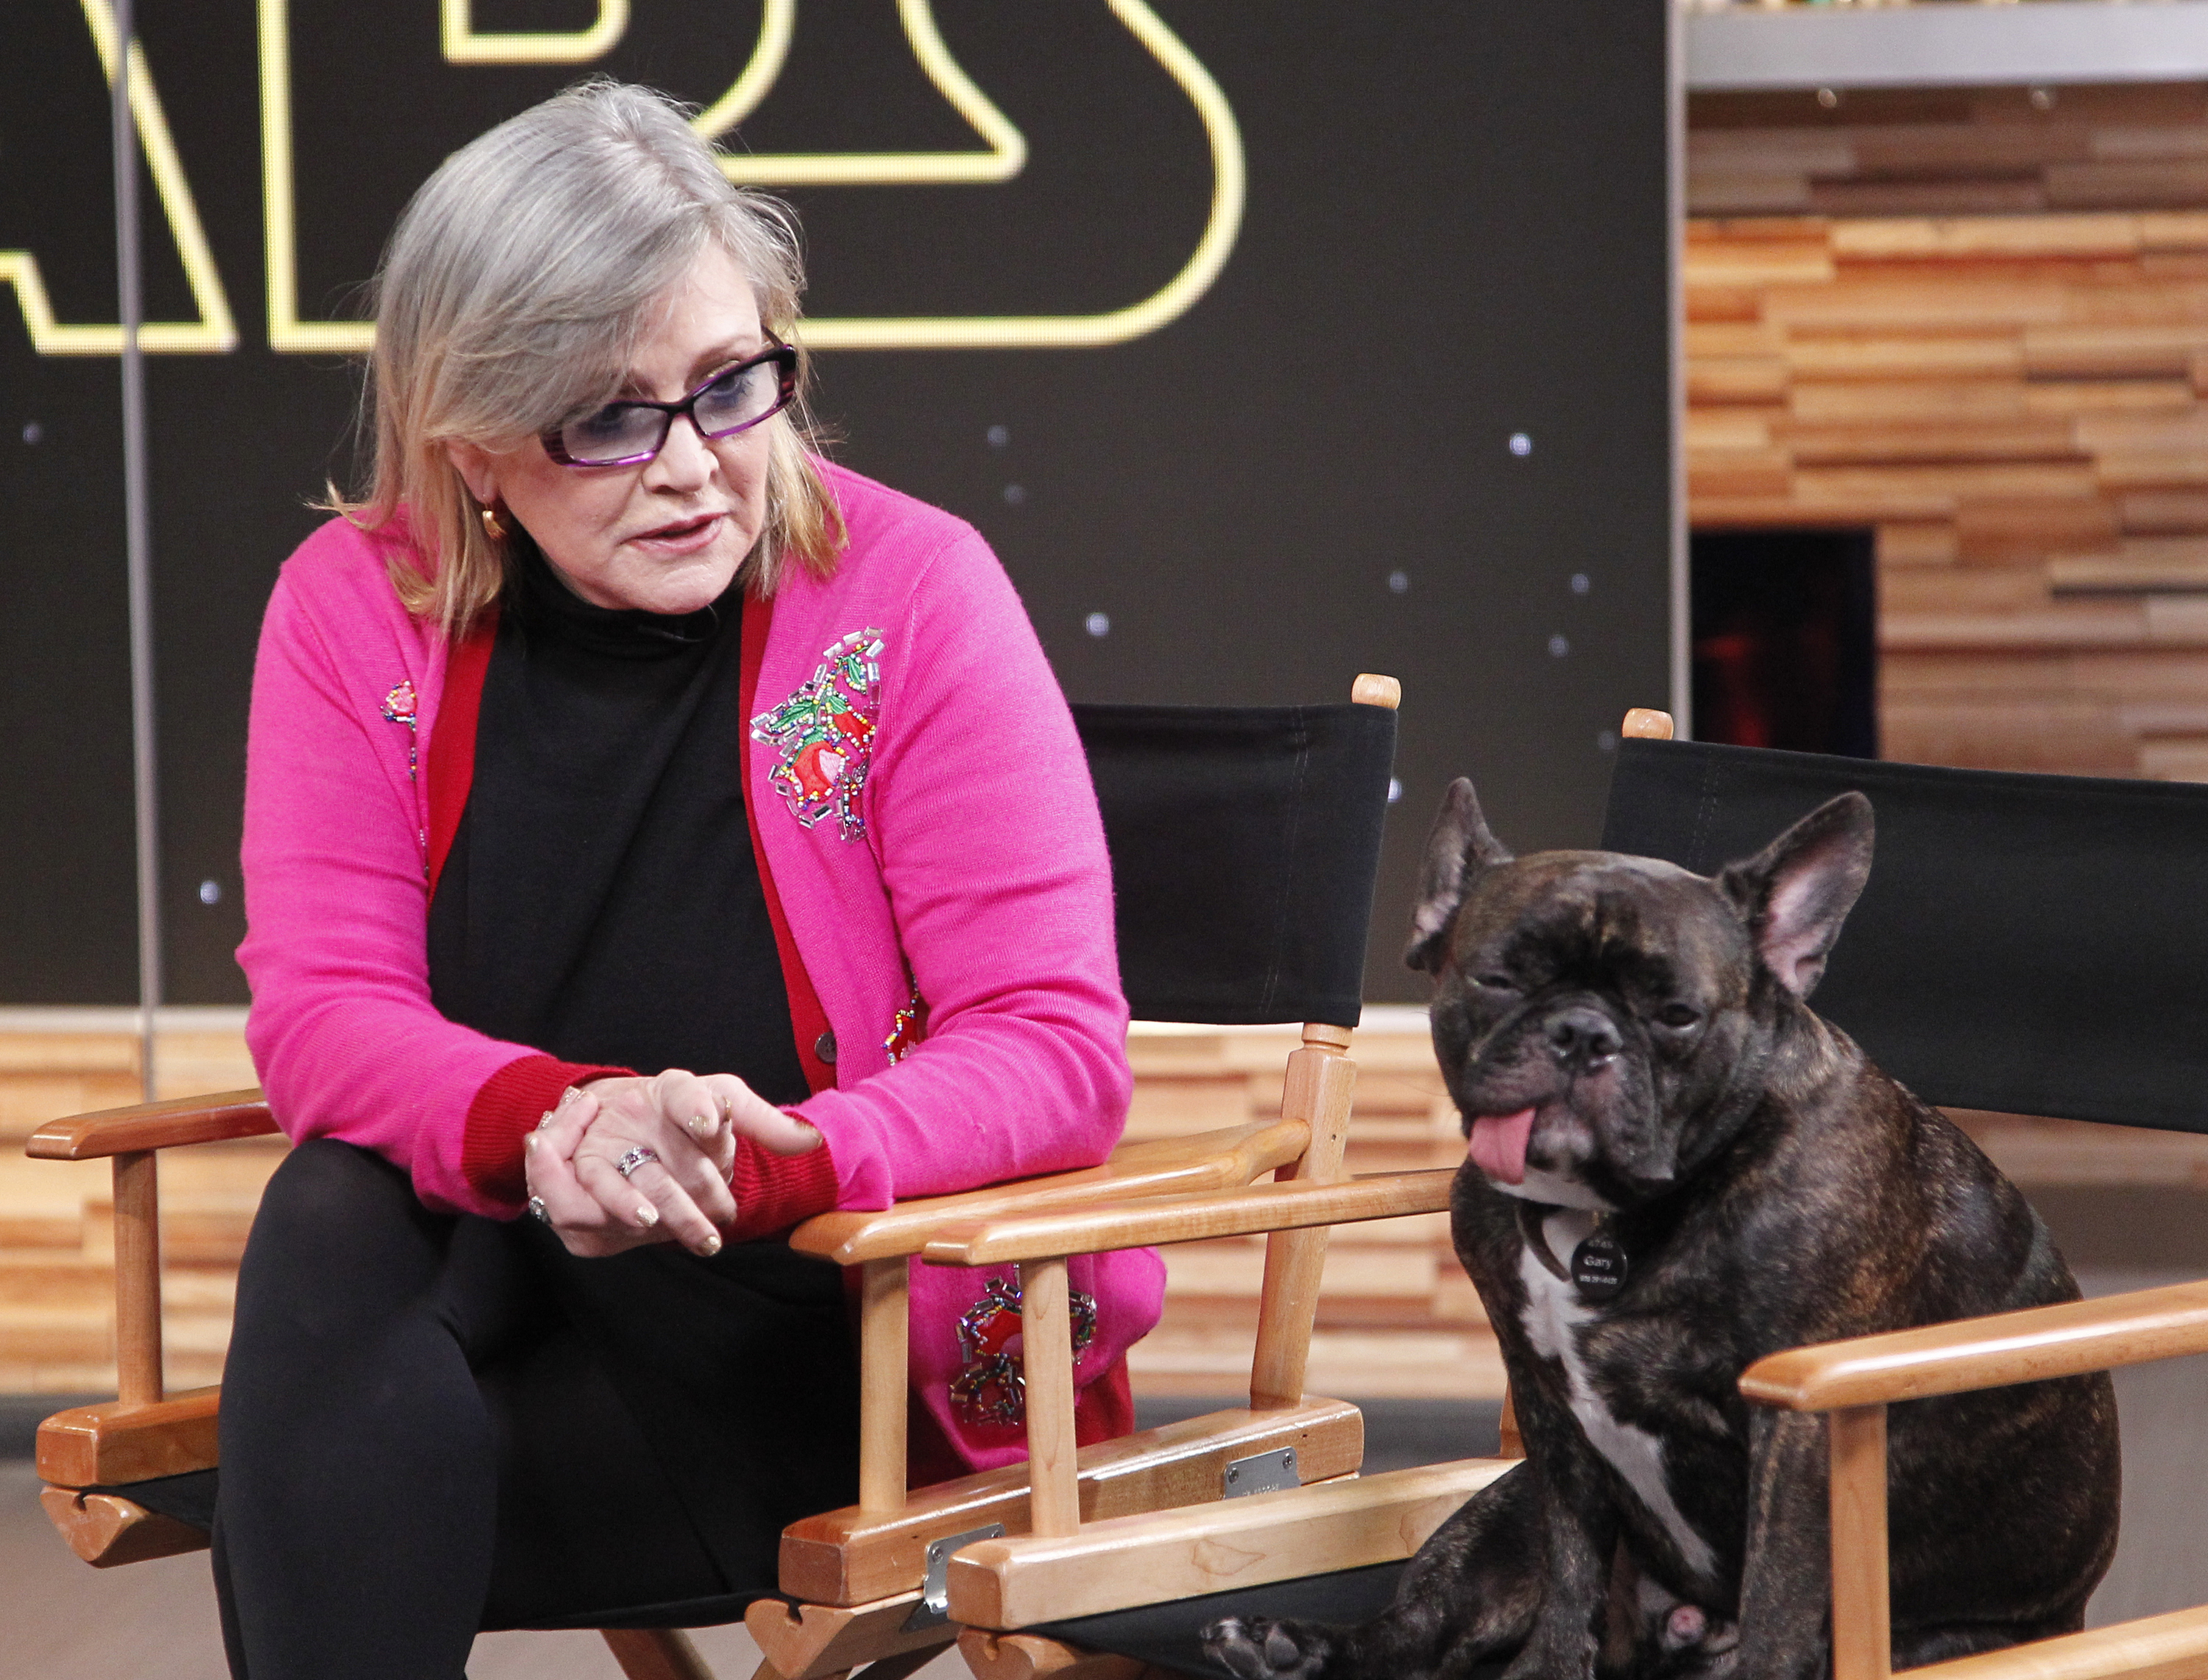 Carrie Fisher's beloved dog, Gary, has found a new home and we're SO happy